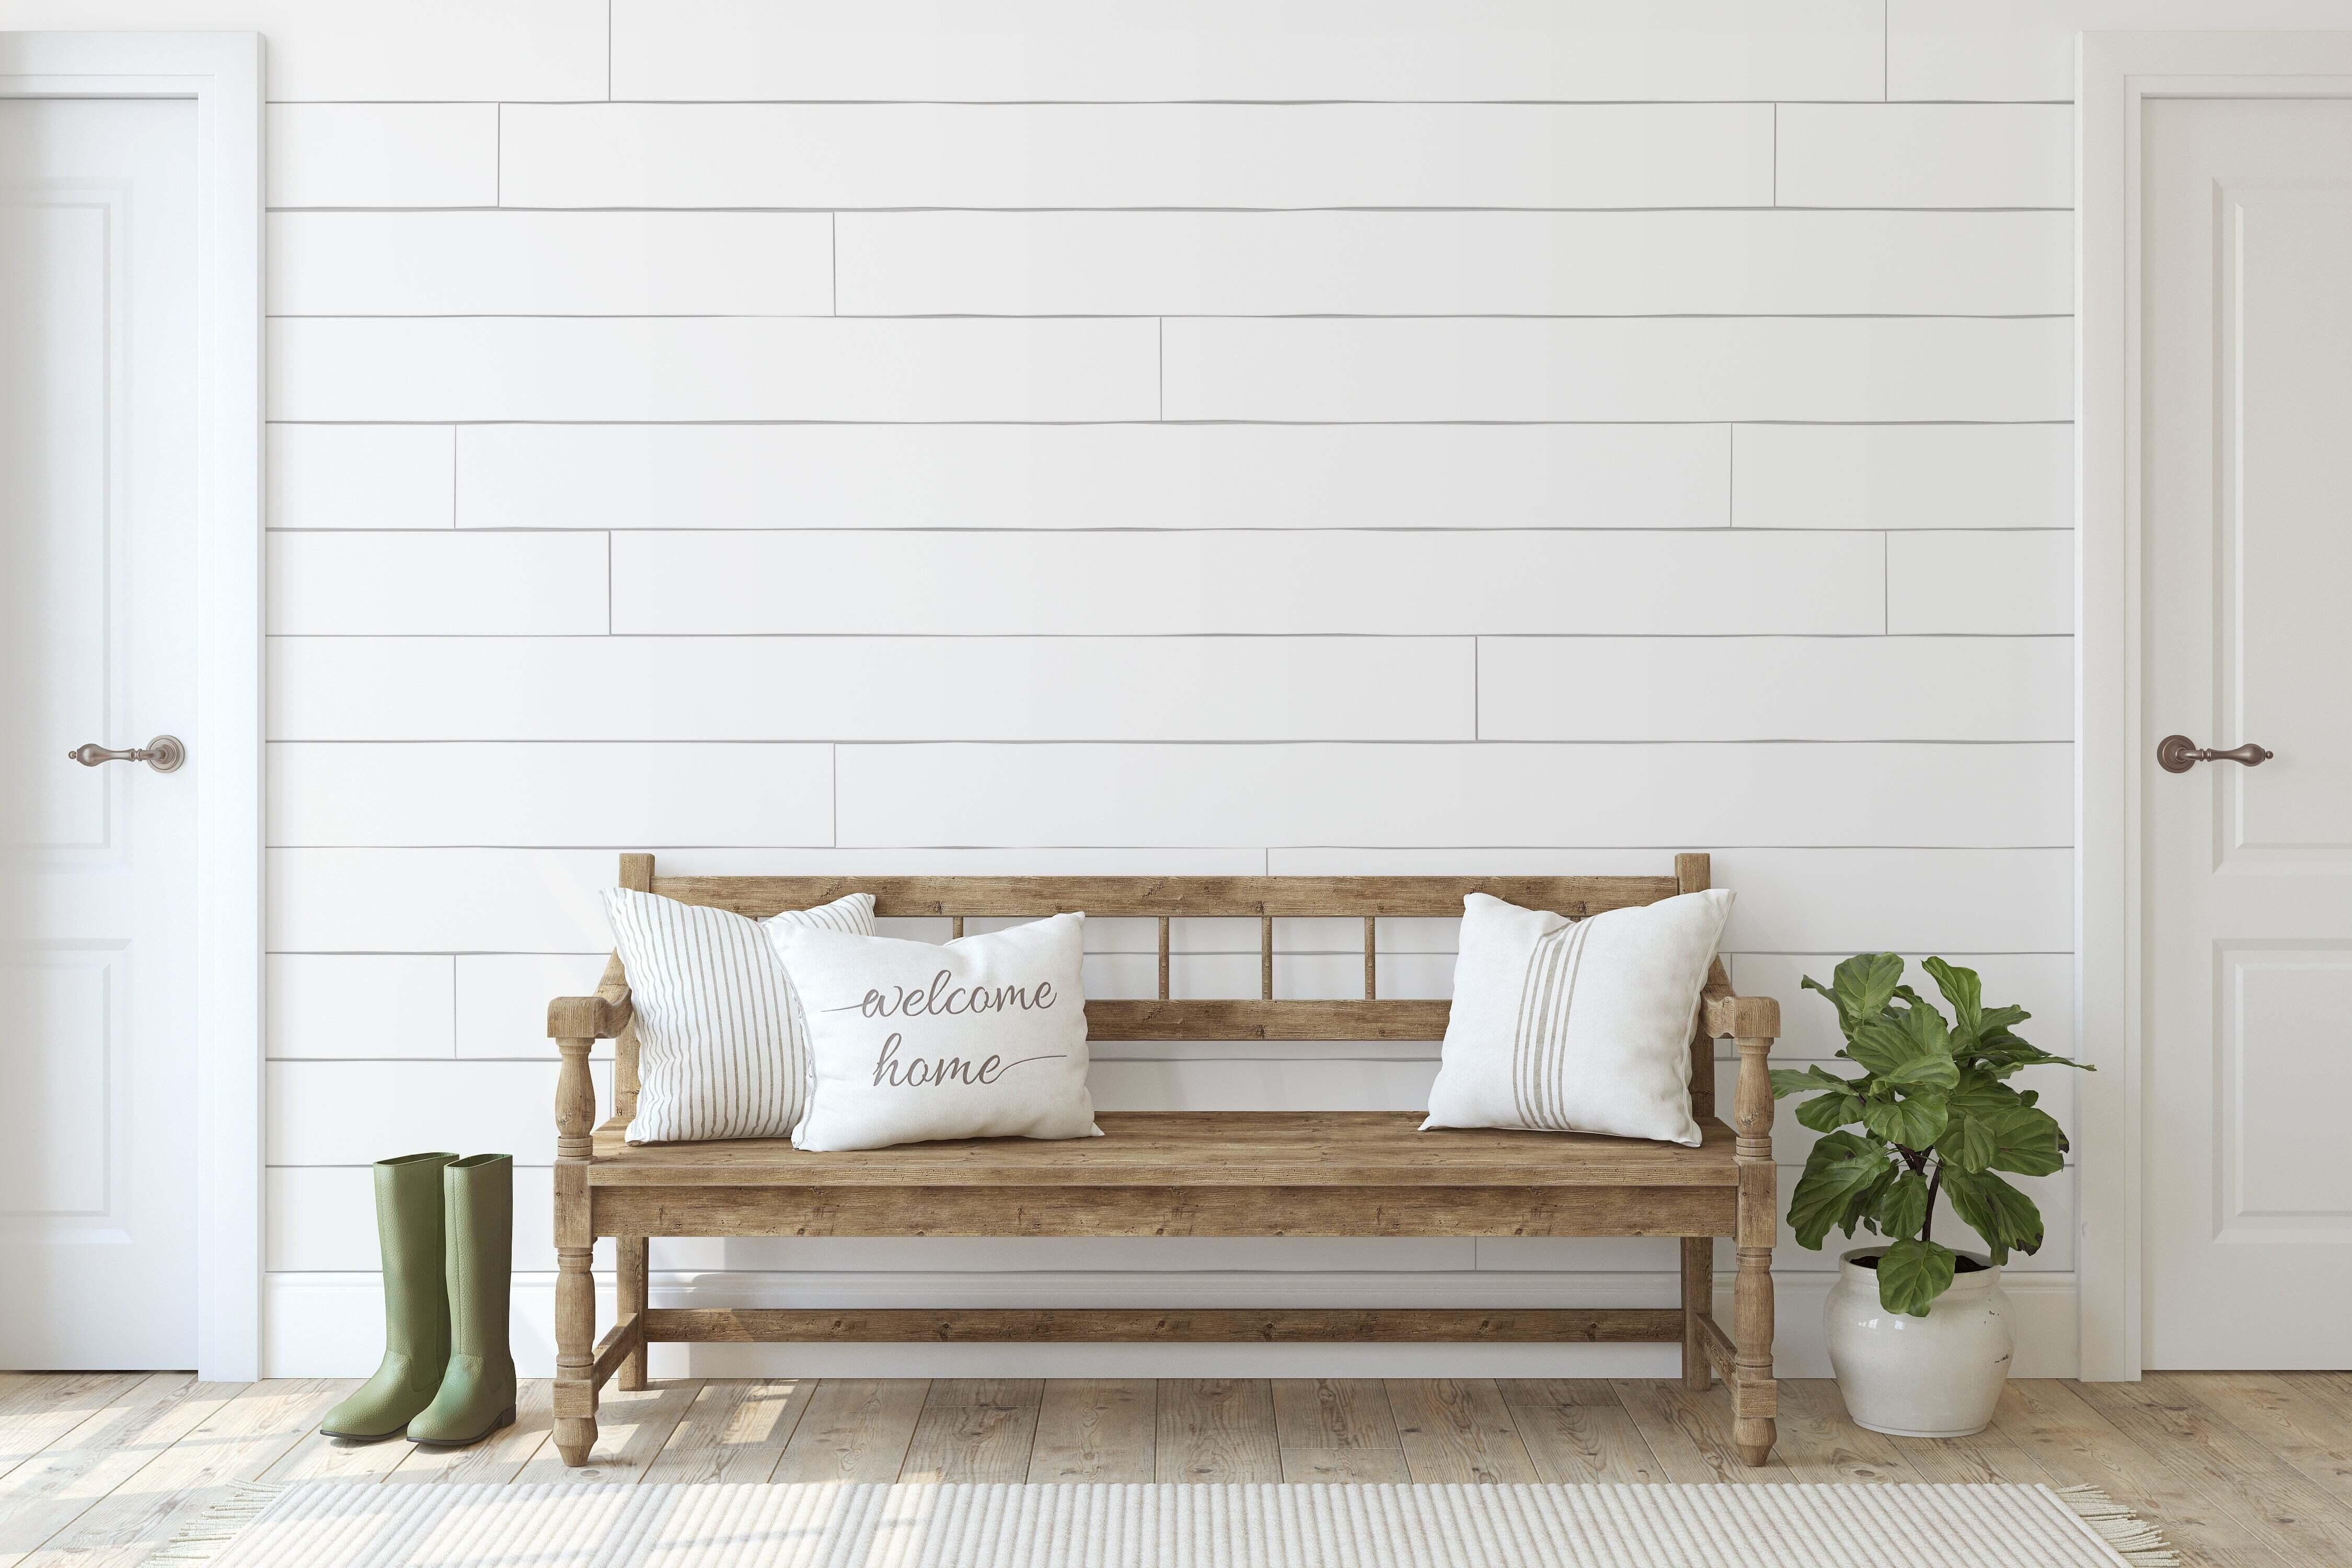 An entryway bench with pillows